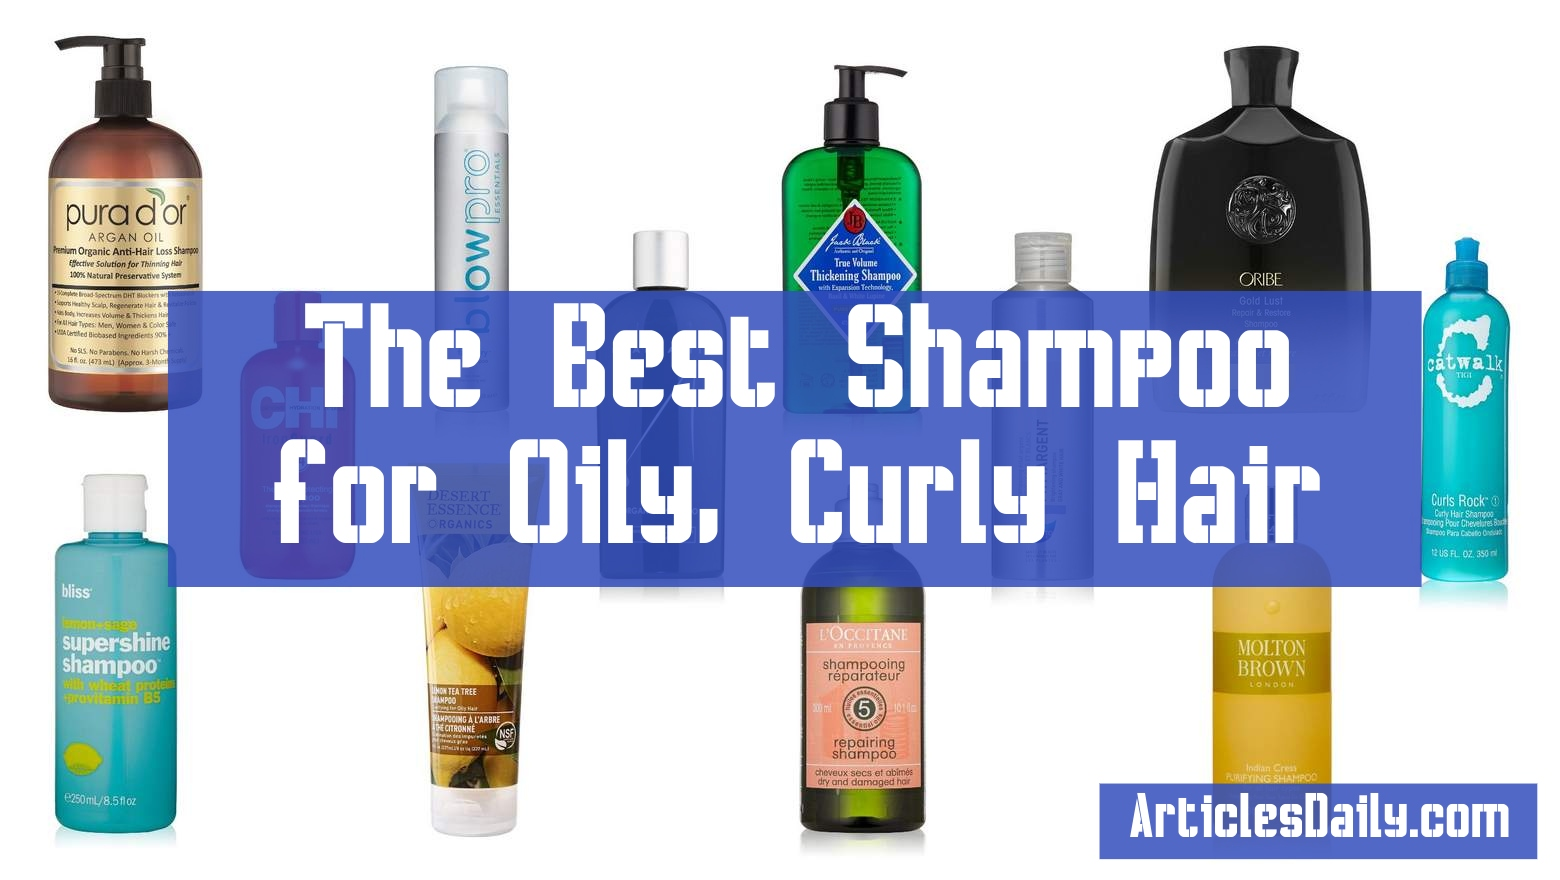 The Best Shampoo for Oily, Curly Hair-articlesdaily.com-shmilon